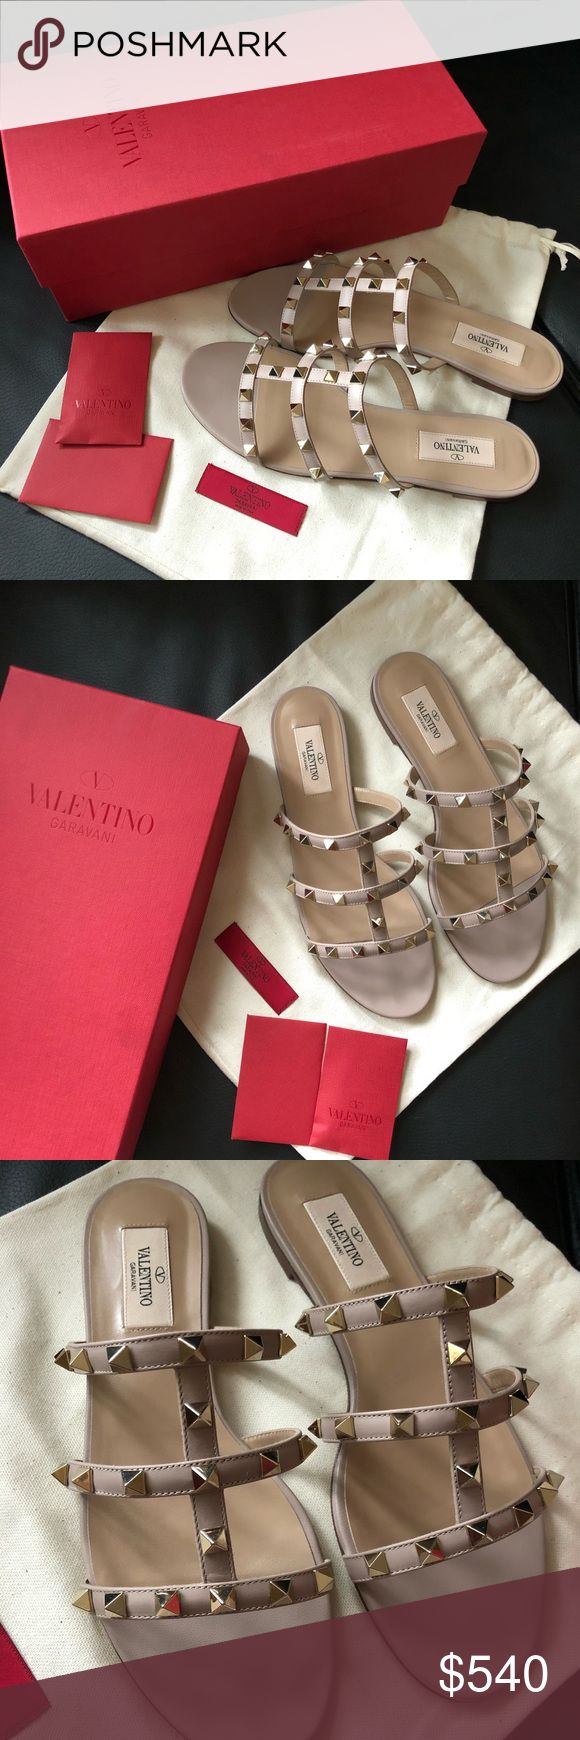 Valentino Rockstud leather slide sandal Hi!  I'm selling these BRAND NEW and NEVER WORN 100% authentic Valentino sandals.  Size: 37  Color: Poudre  It comes with the original box, travel bag and all the original packing.  I purchased these on a final sale, and the size was too big. Since I am unable to return them, I would love for them to go to someone else.  They look beautiful and classy, and the color goes with all outfits! -> will be shipped after March 11th 2018 (on vacation till then)…